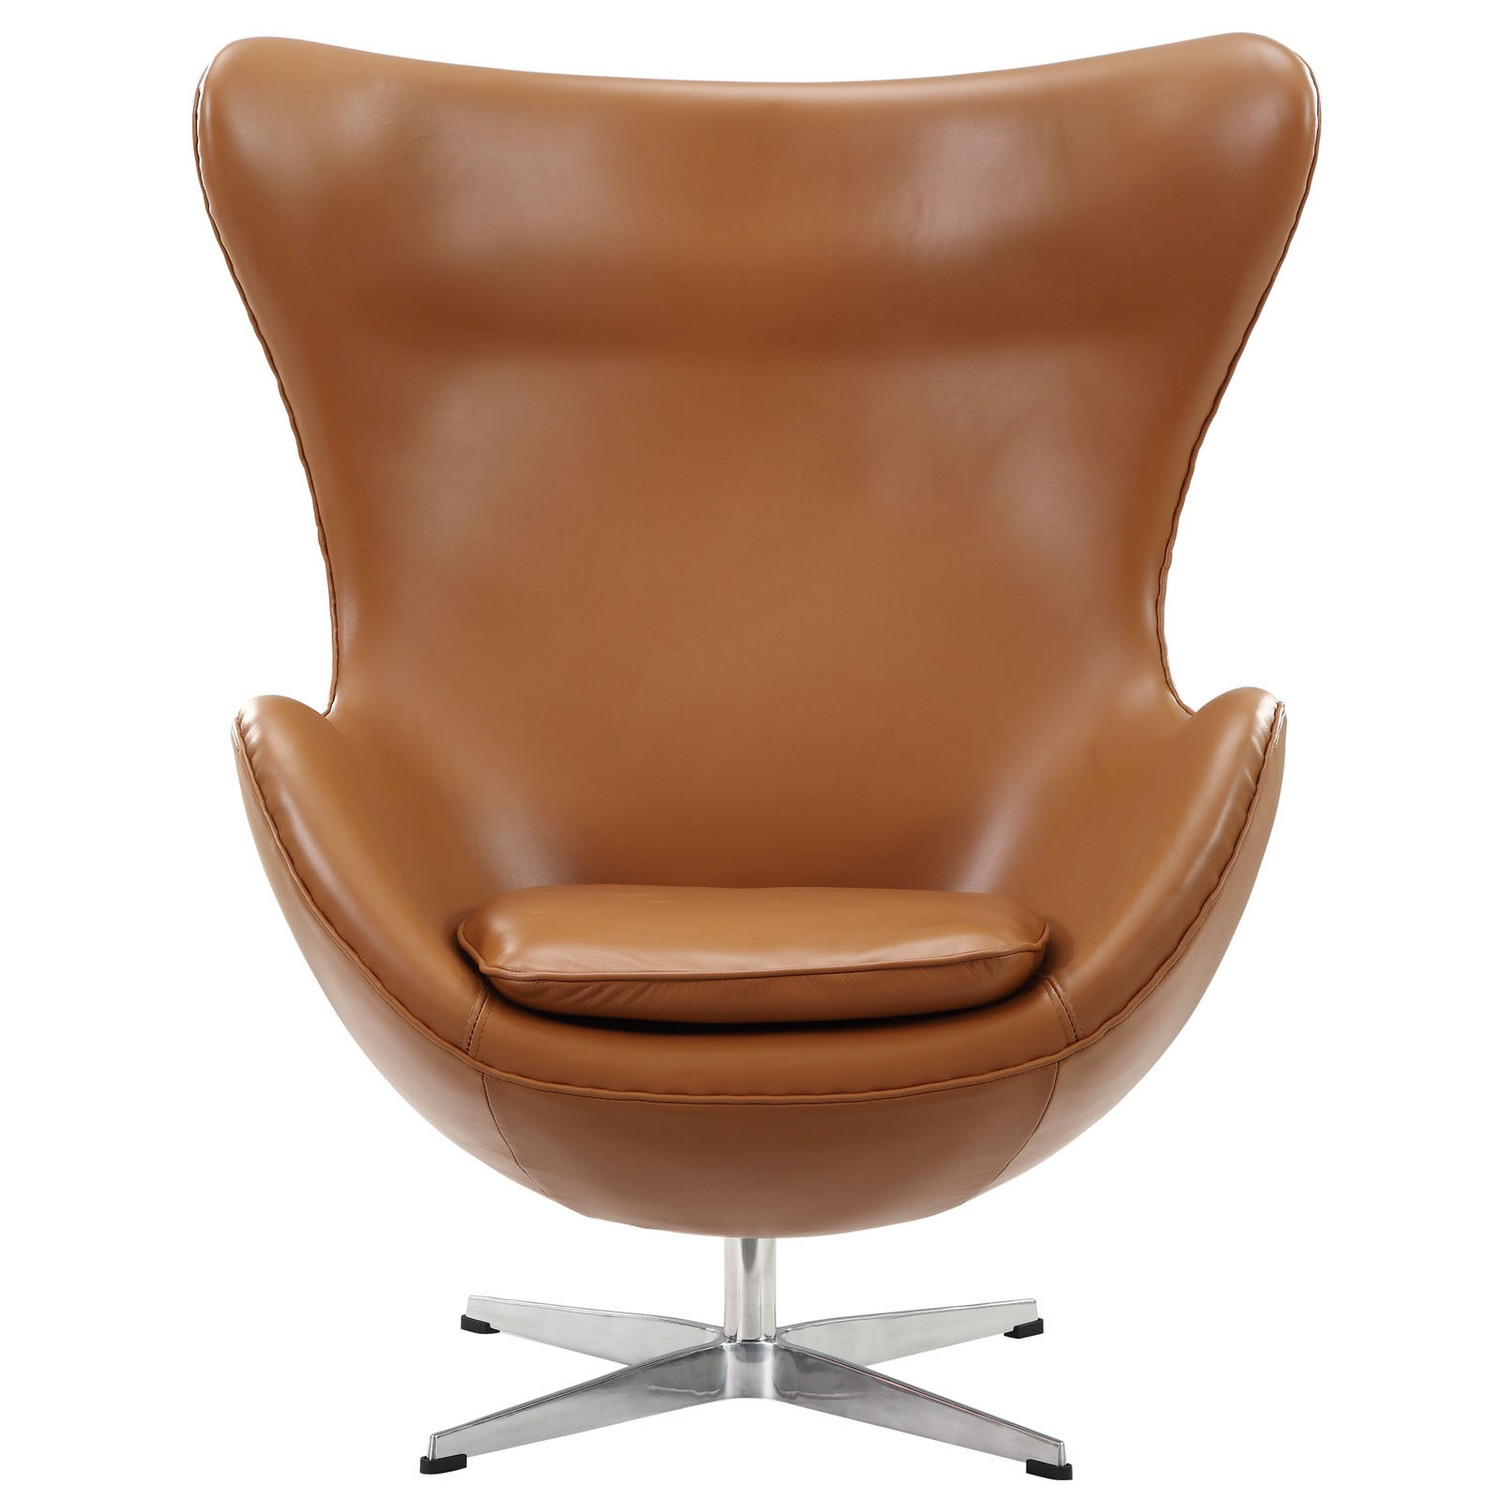 Modway Glove Leather Lounge Chair - Terracotta